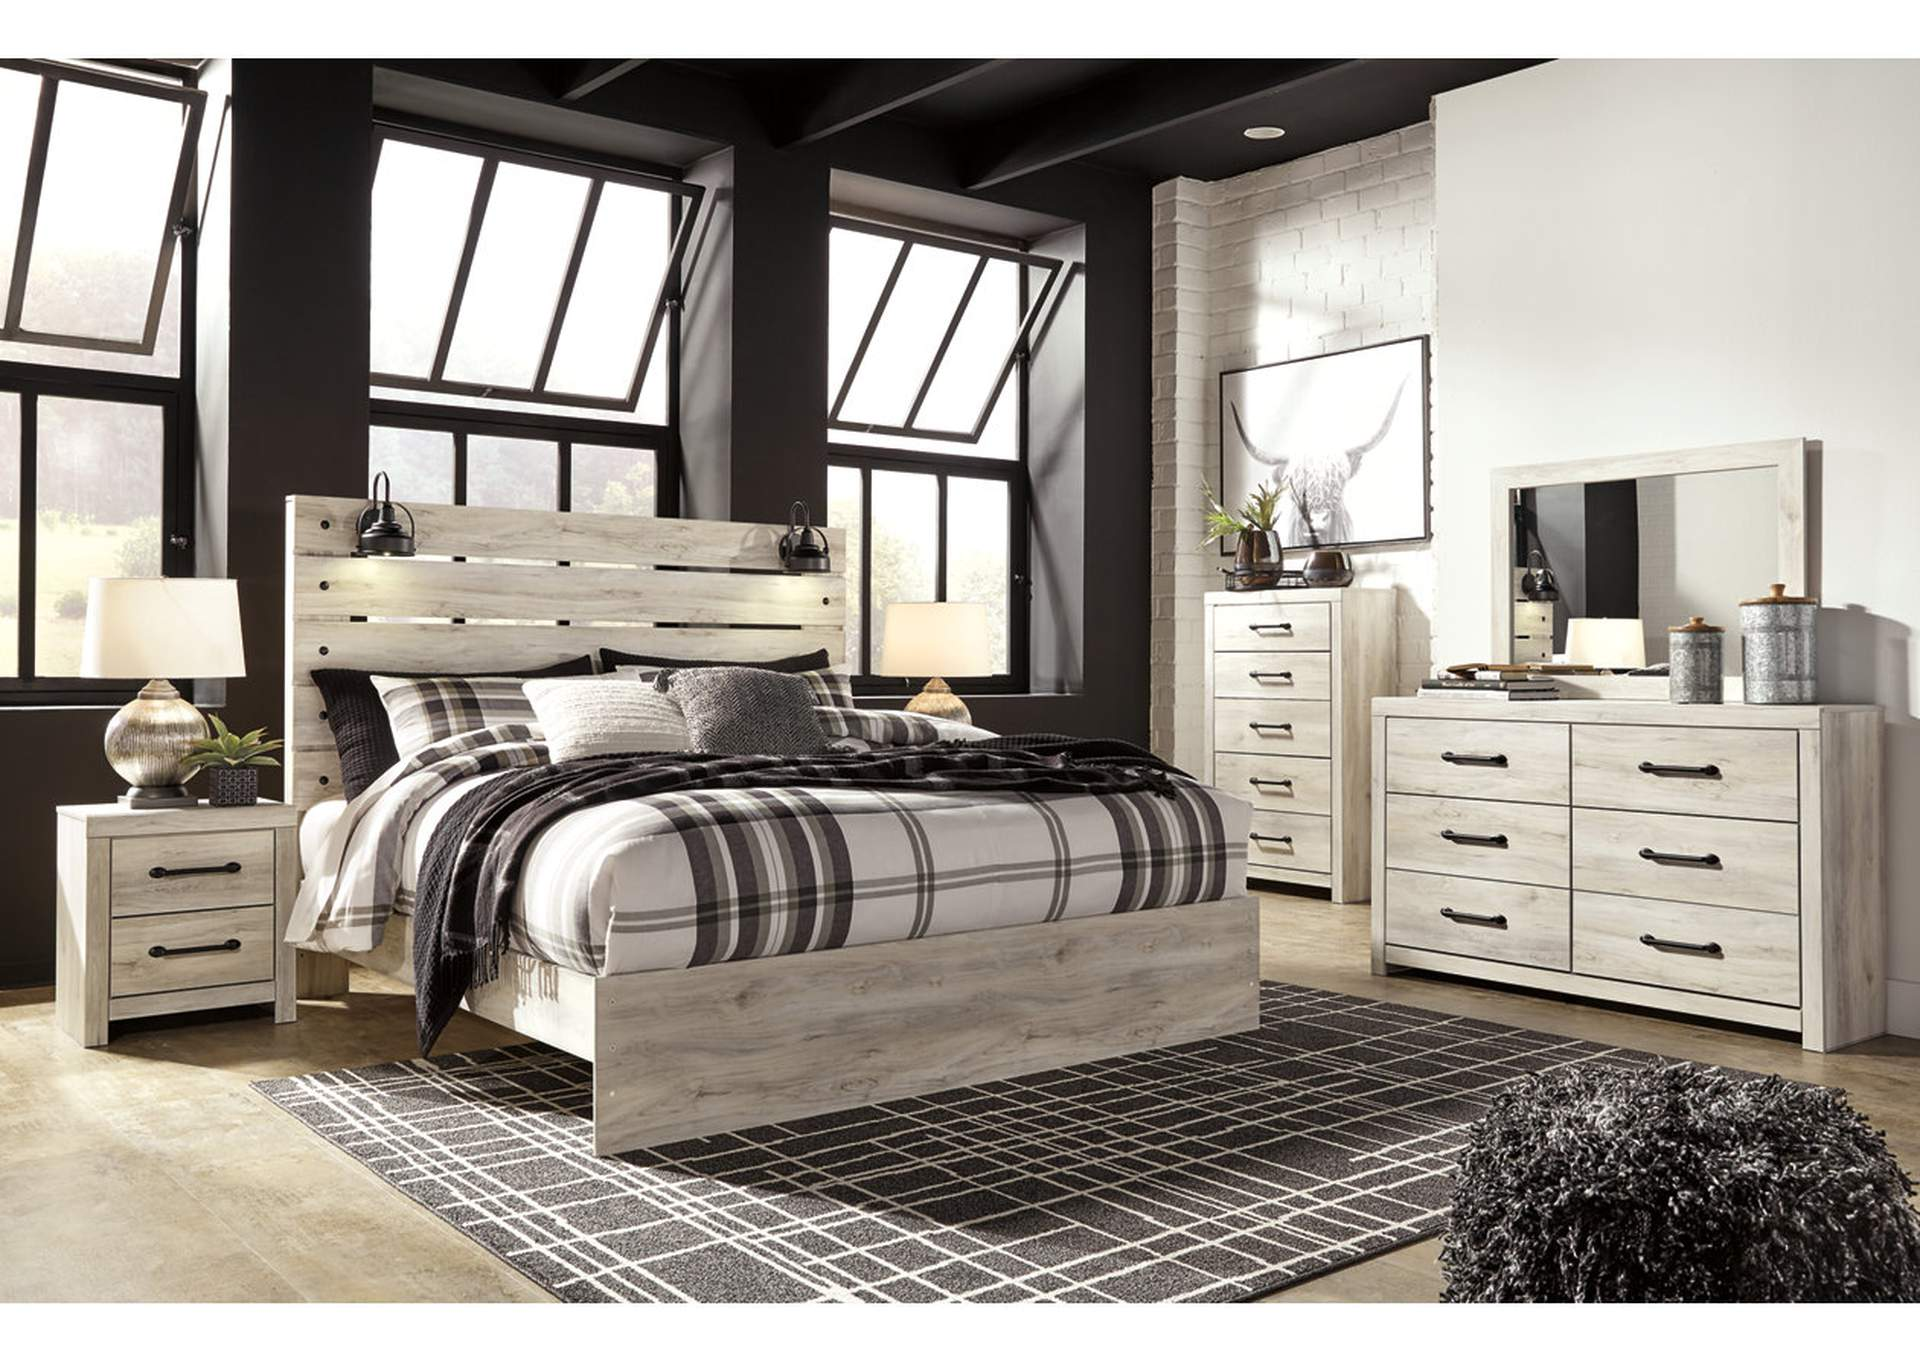 Cambeck King Panel Bed w/Dresser and Mirror,Signature Design By Ashley